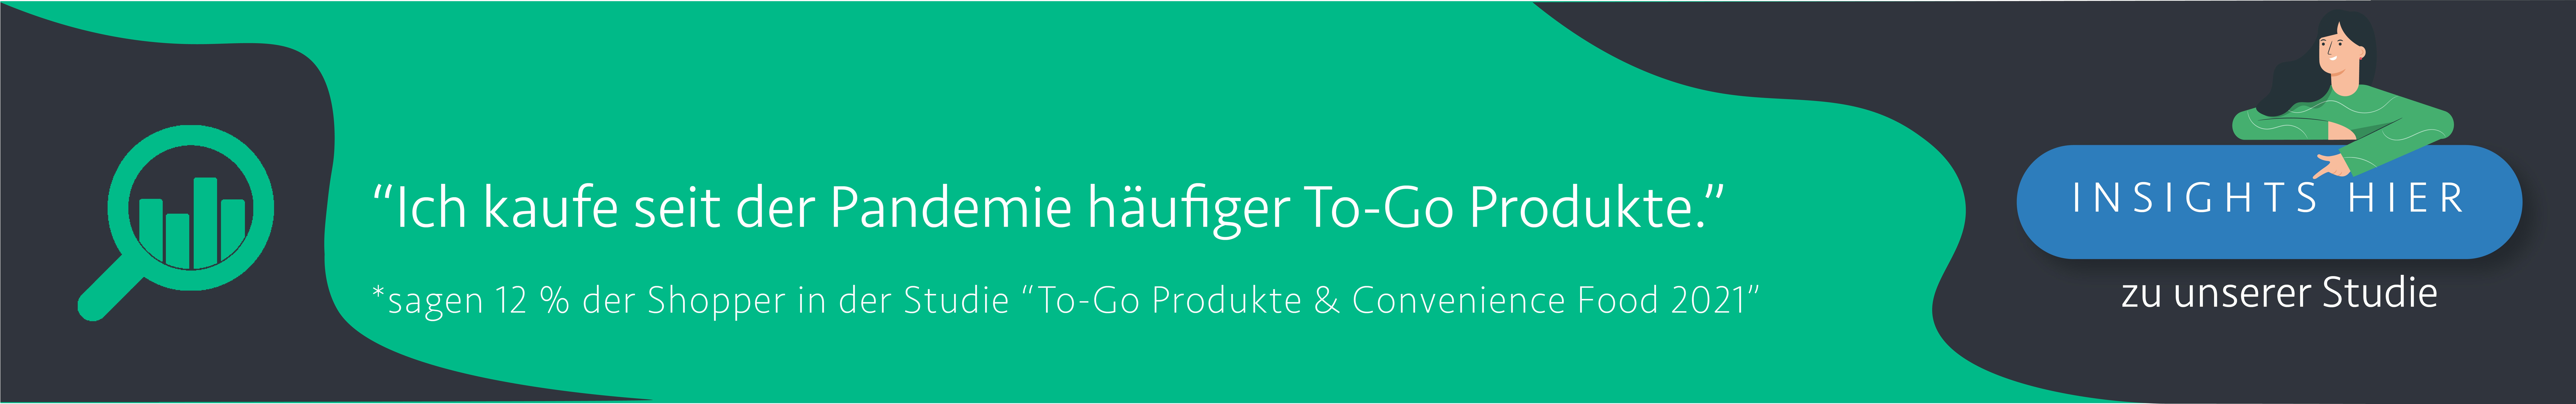 Convenience Food & To-Go Produkte